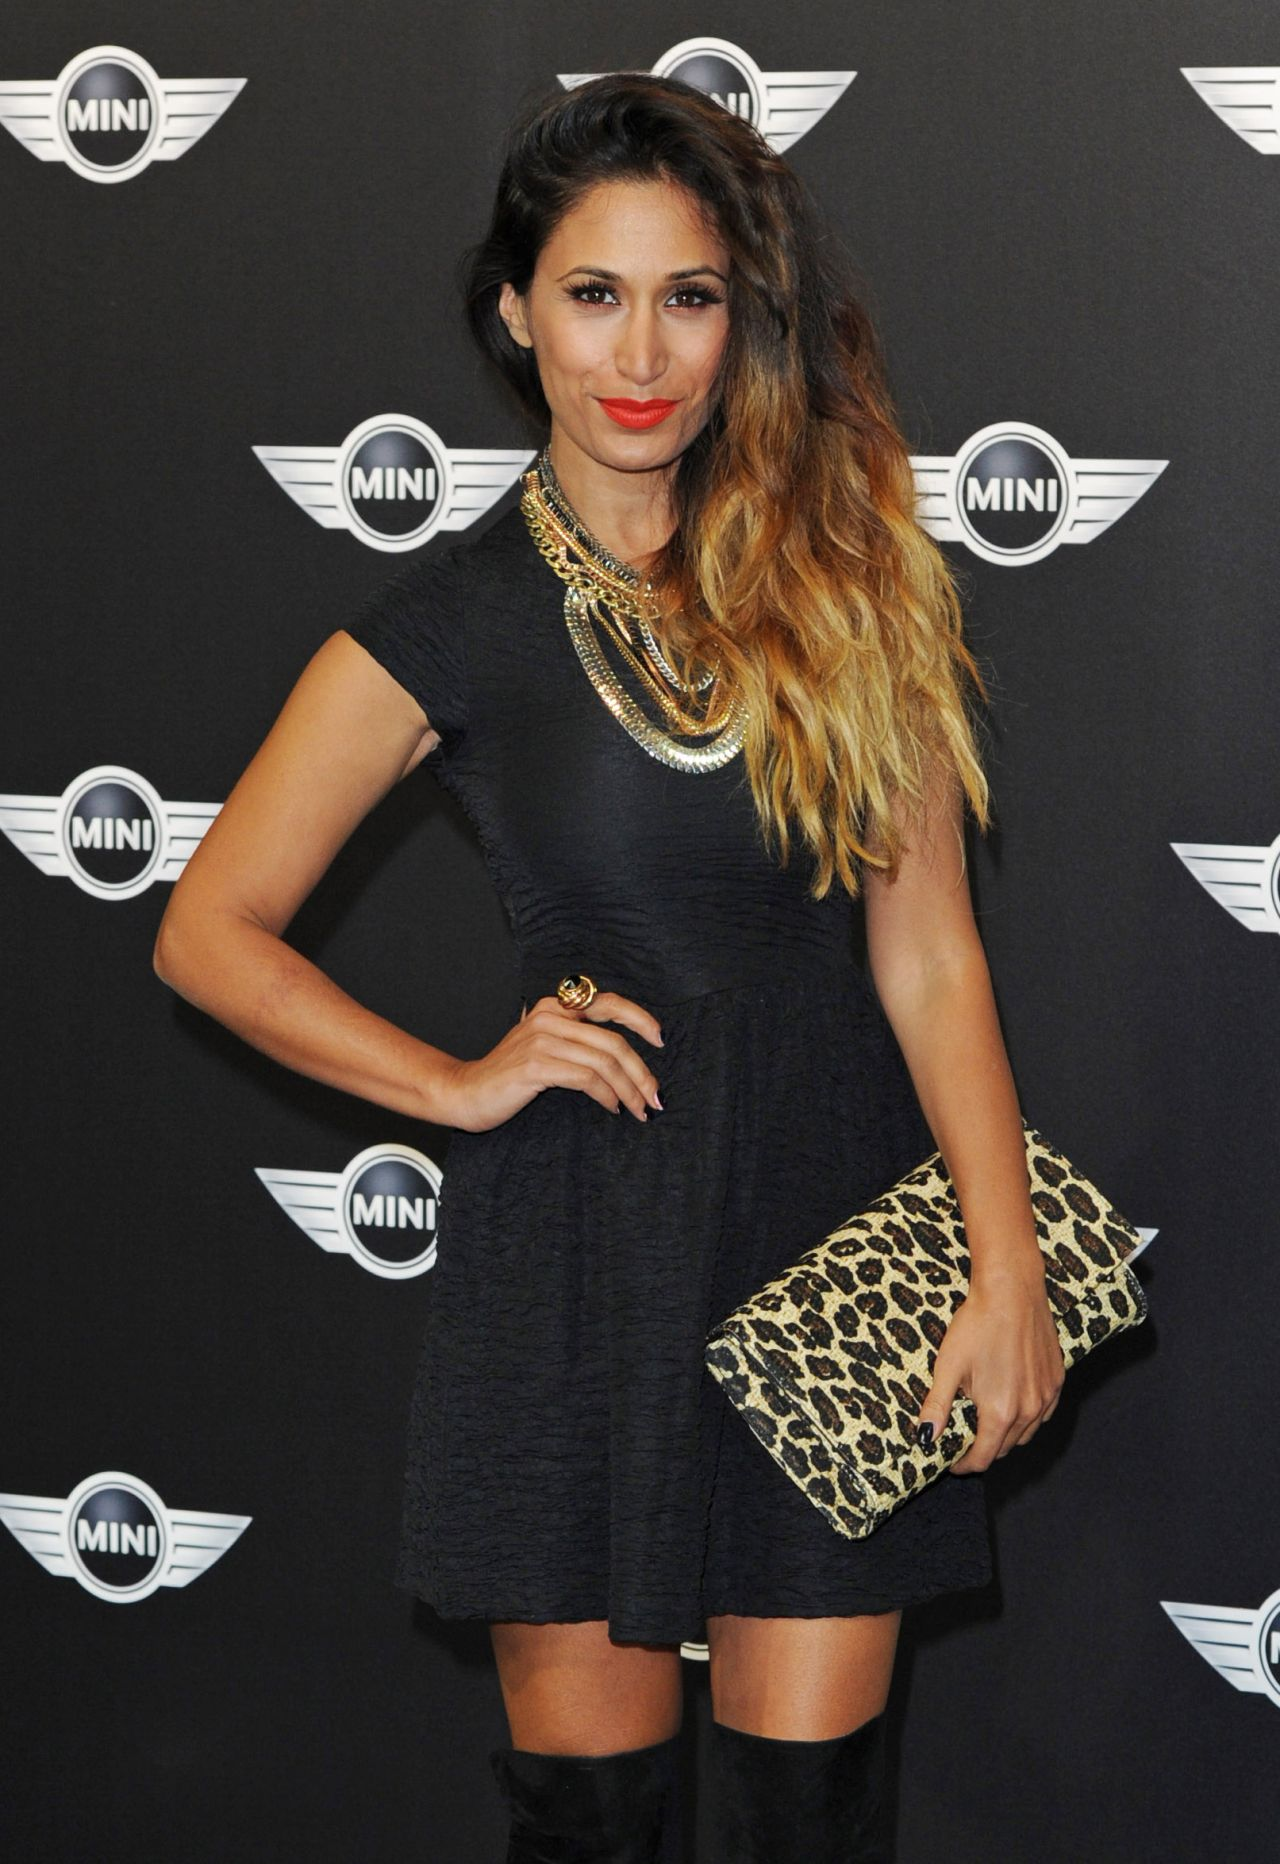 Preeya Kalidas Red Carpet Photos - The MINI Launch Party at The Old Sorting Office in London - November 2013